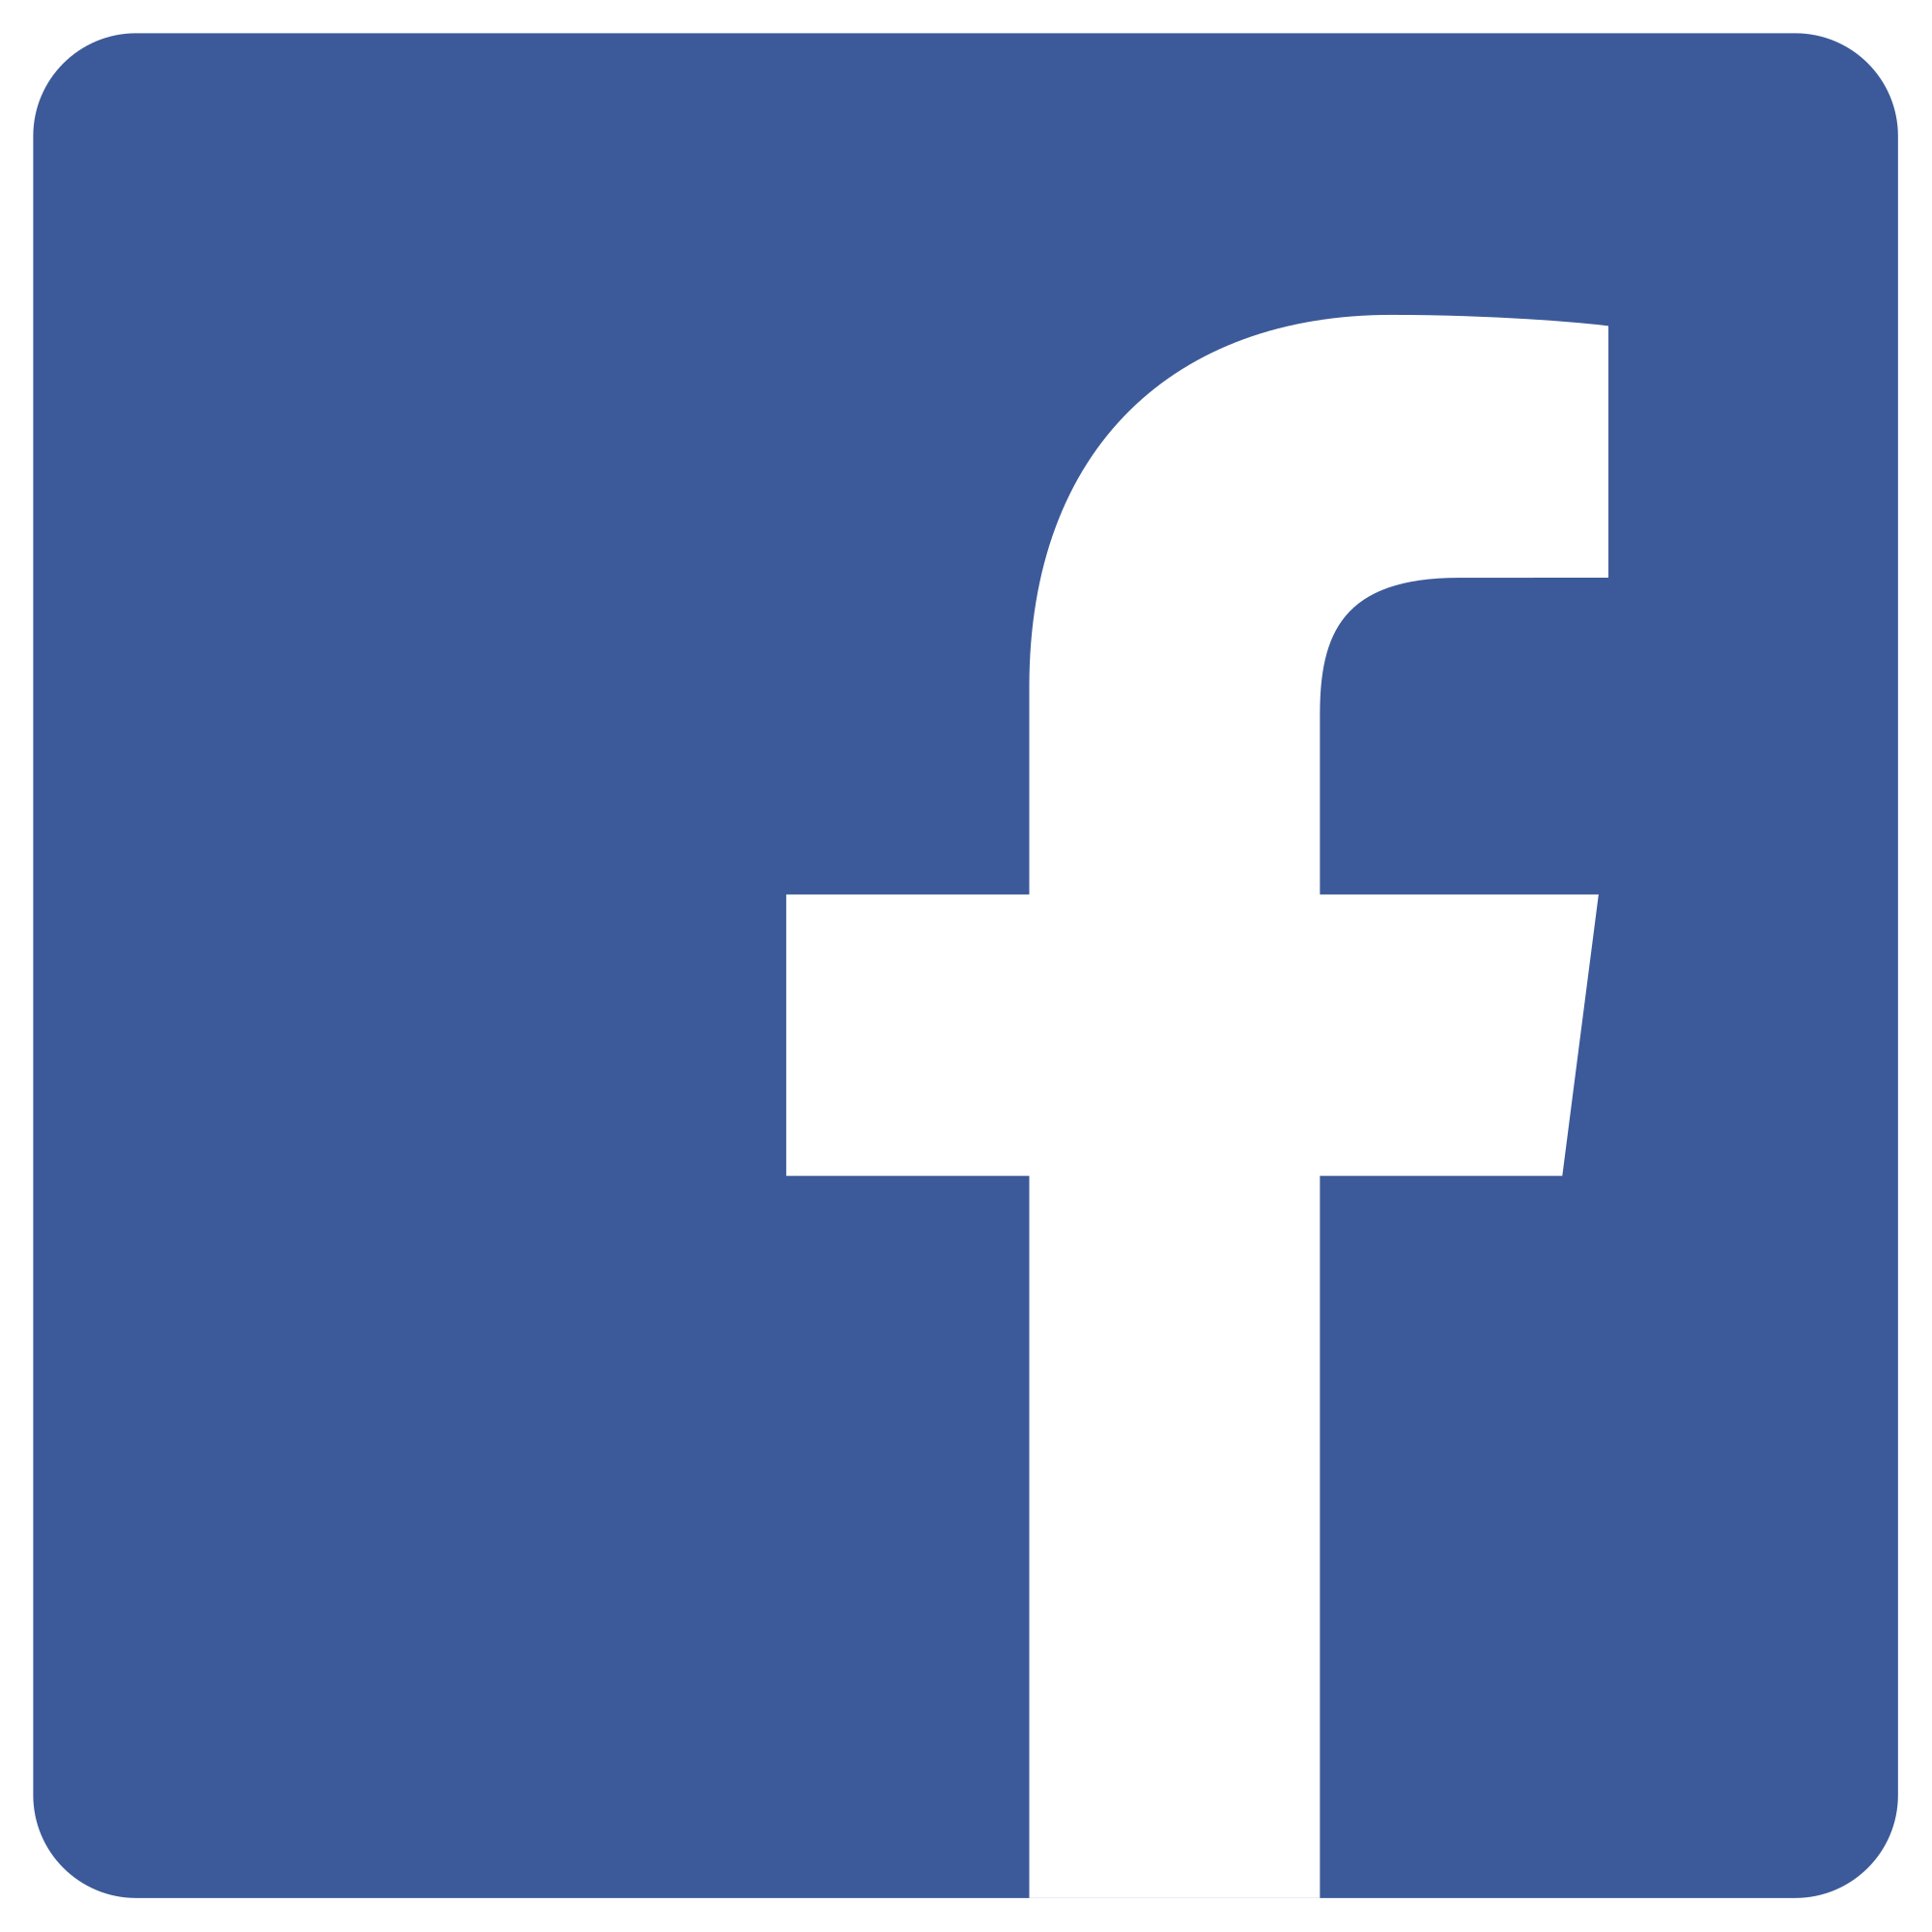 media/design/facebook_icon.png